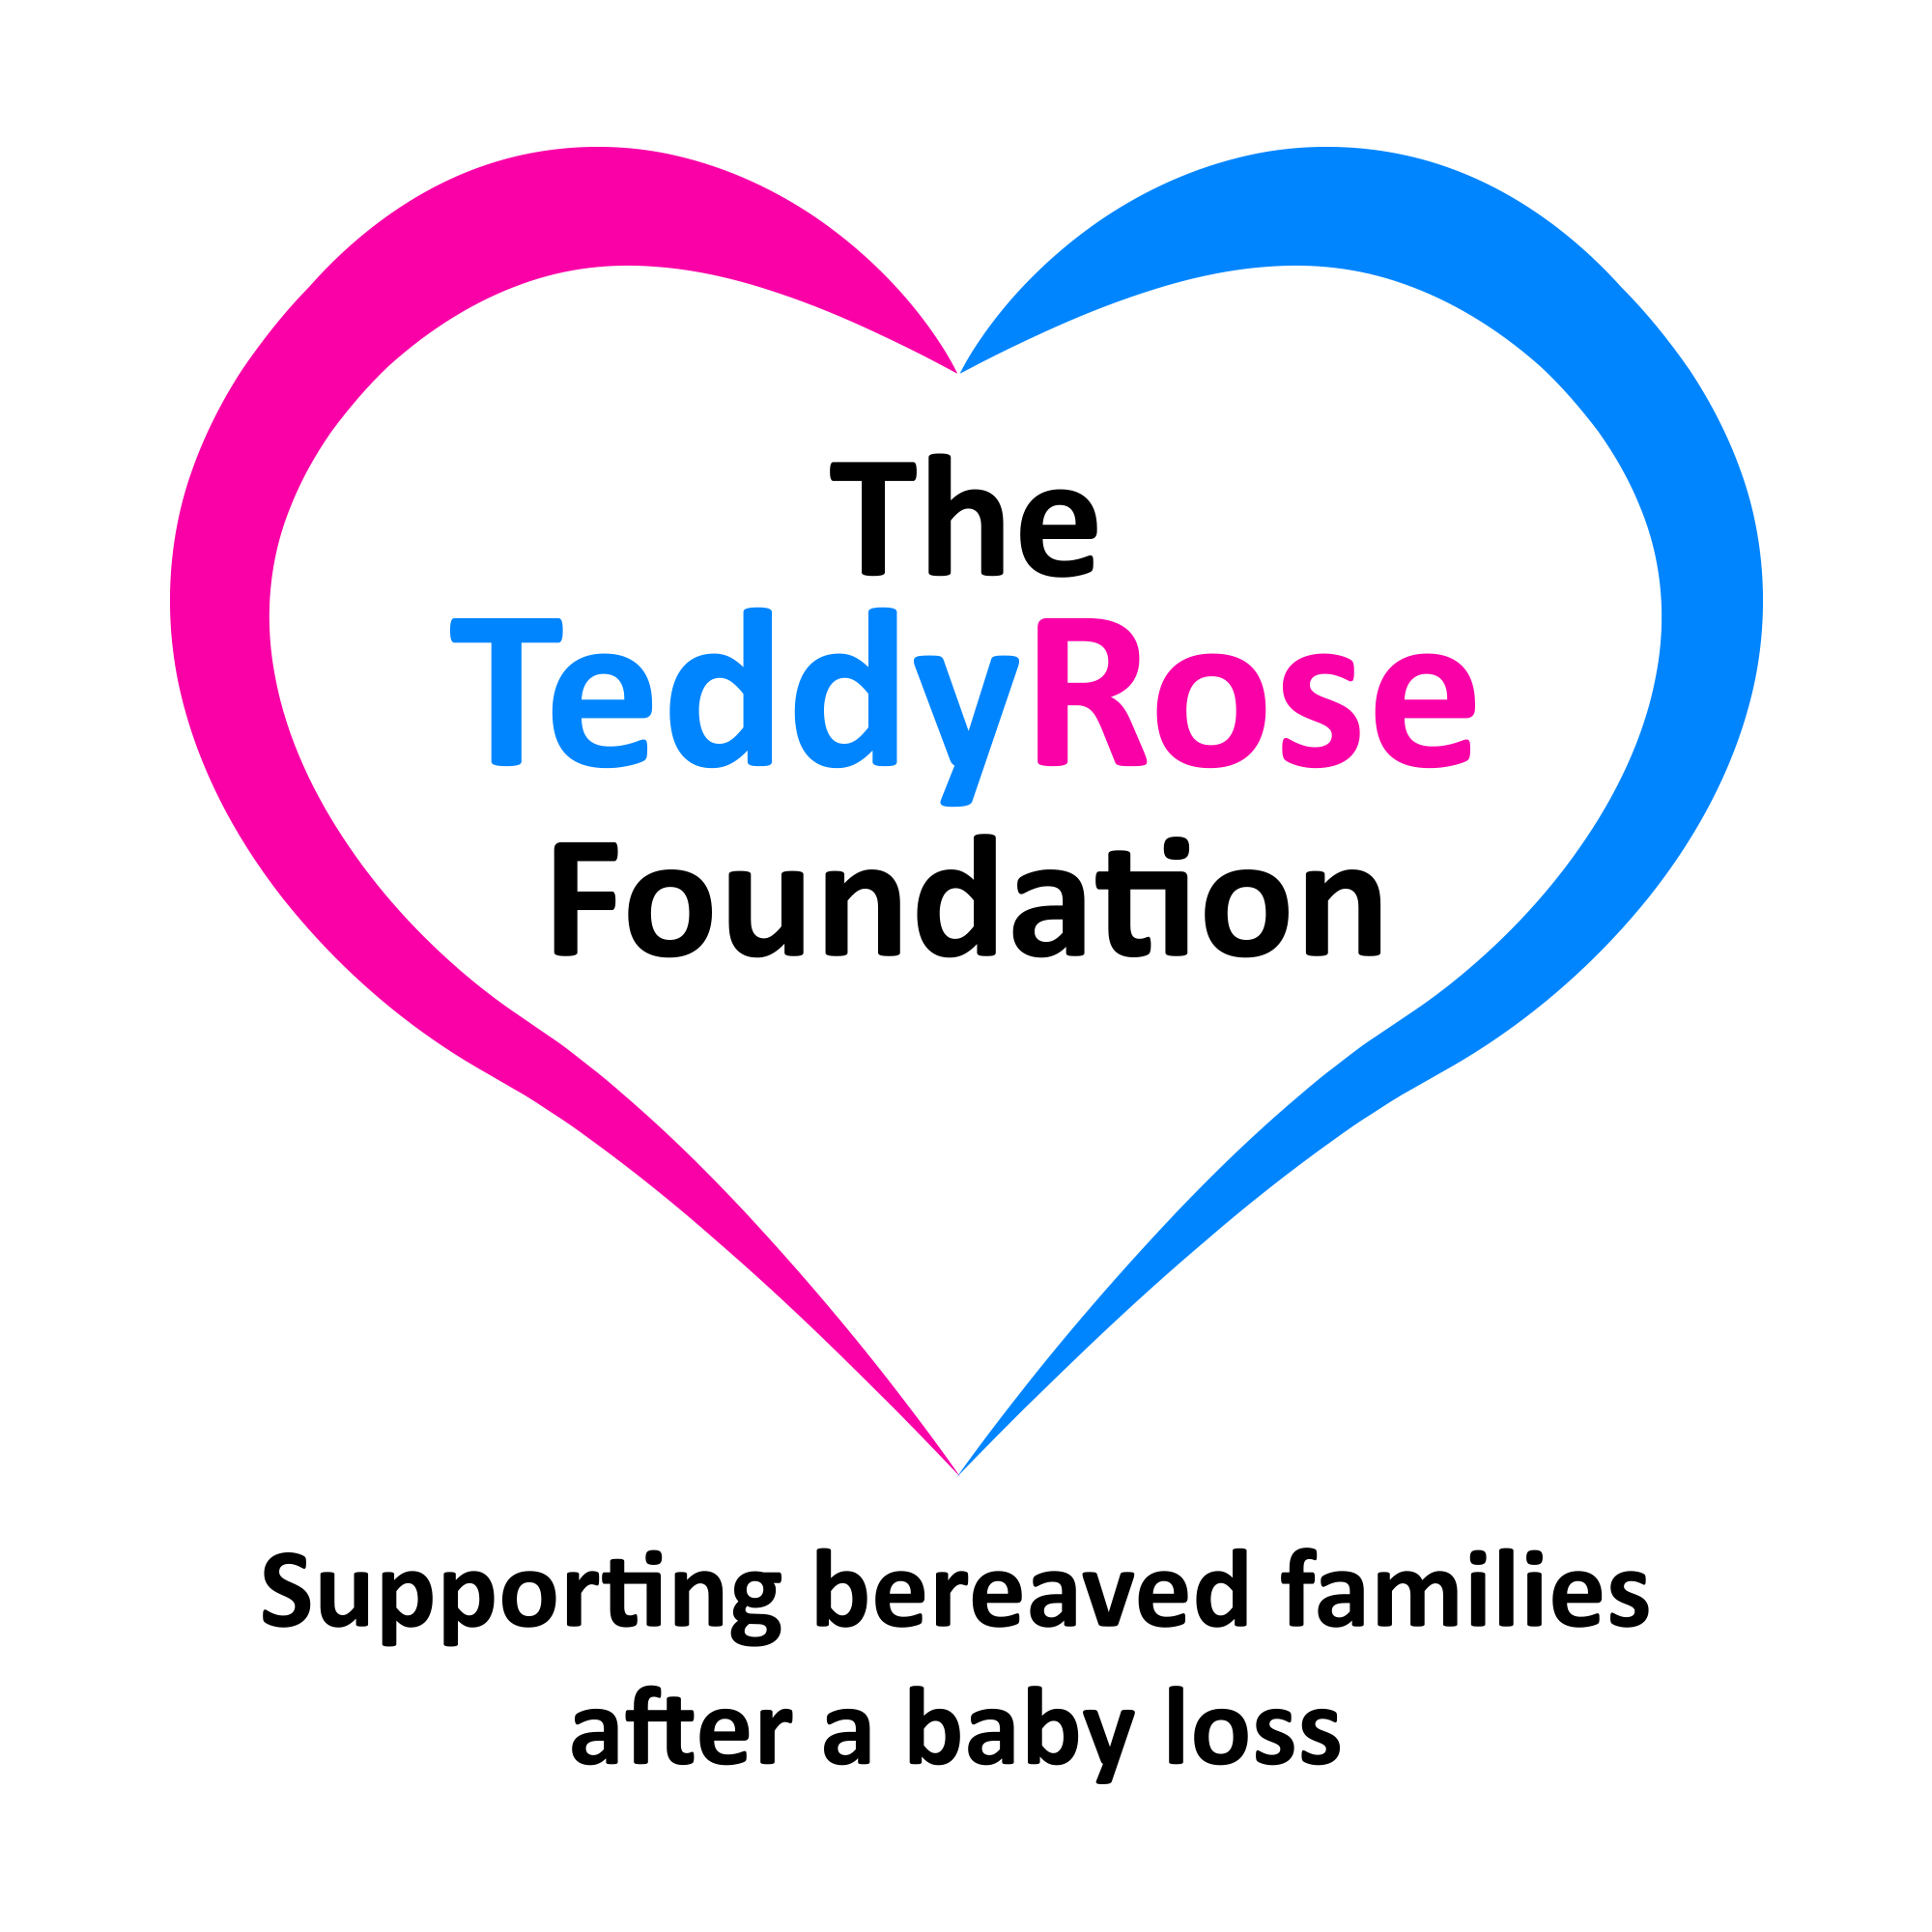 The TeddyRose Foundation